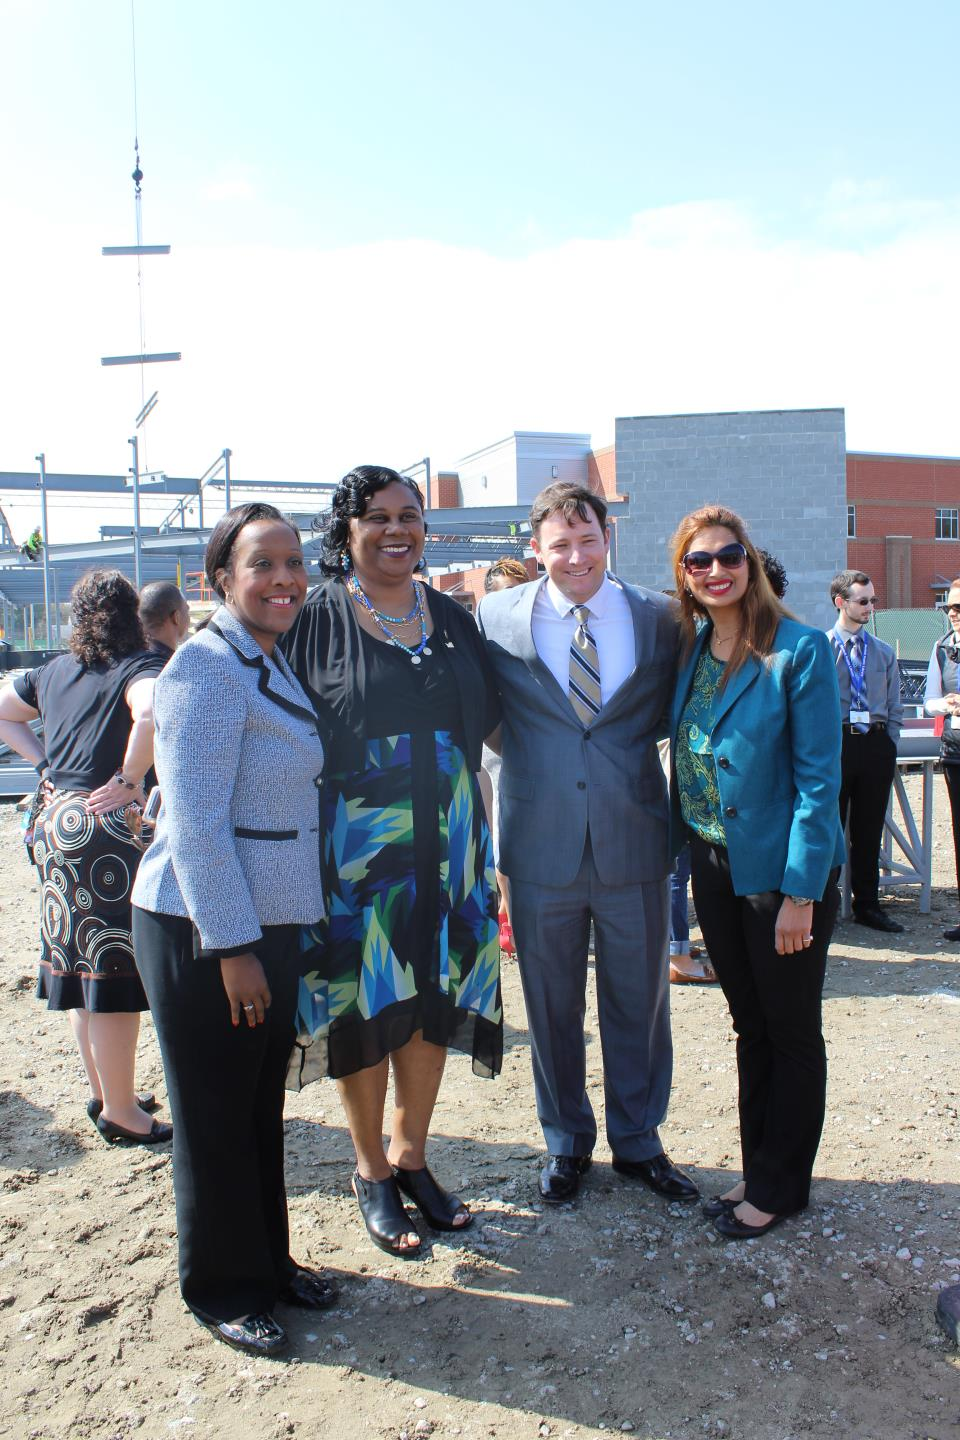 City Council Members Angelia Graves and Mamie Johnson with the Chairman of the NPL Board of Trustees, Roy B. Martin IV, and Director of Libraries, Sonal Rastogi.